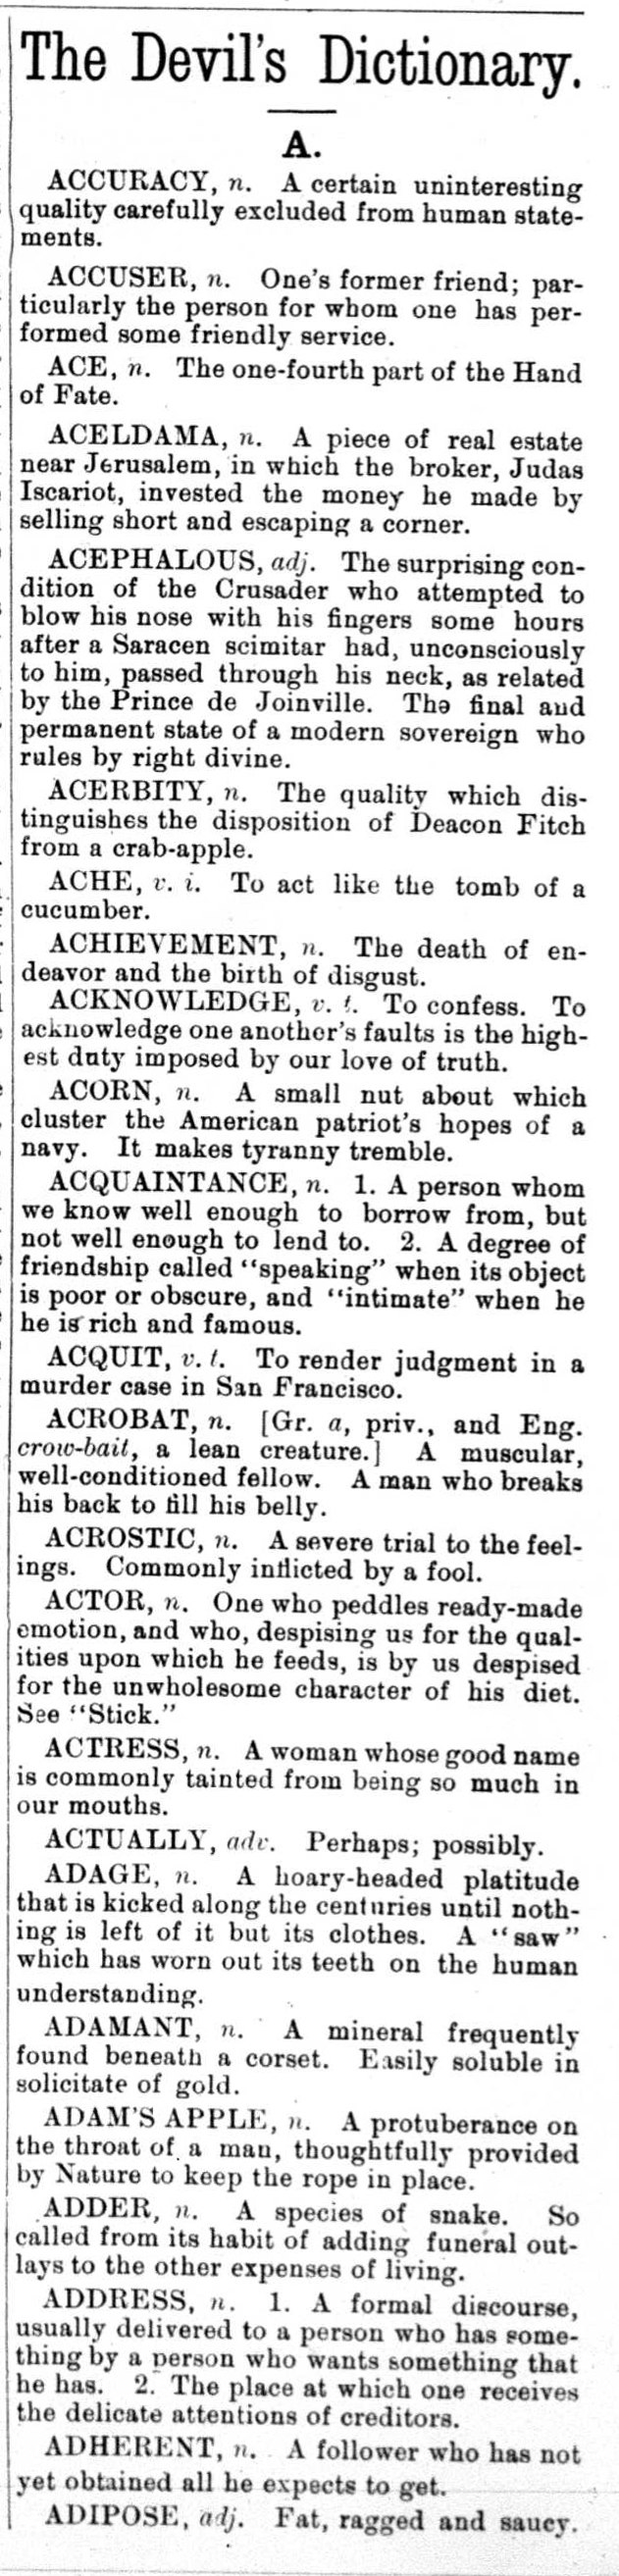 5 March 1881 first The Devil's Dictionary column by Ambrose Bierce